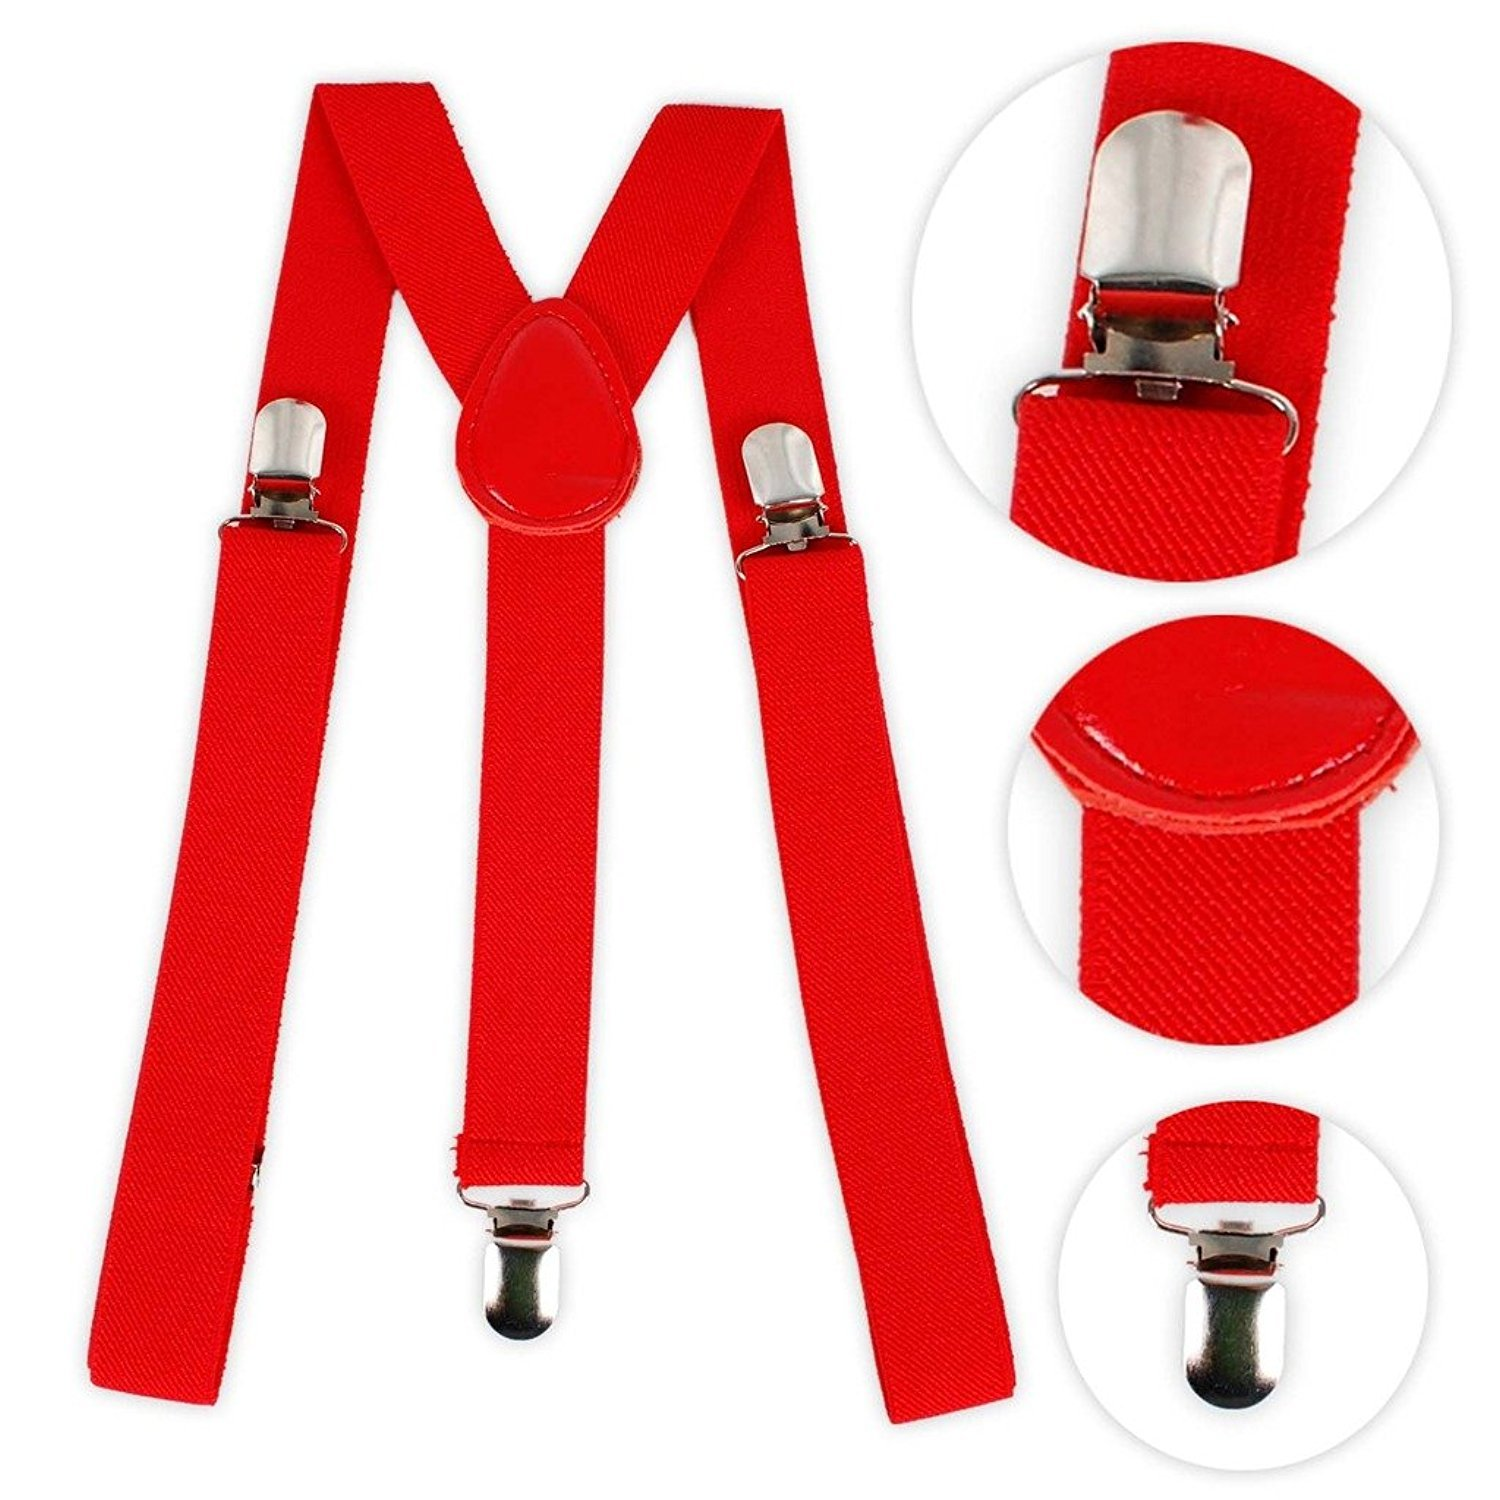 Pair of Braces[suspenders] Available in Red,White or Black Fully adjustable to fit most sizes. (Red) SK-JR2W-GBZZ